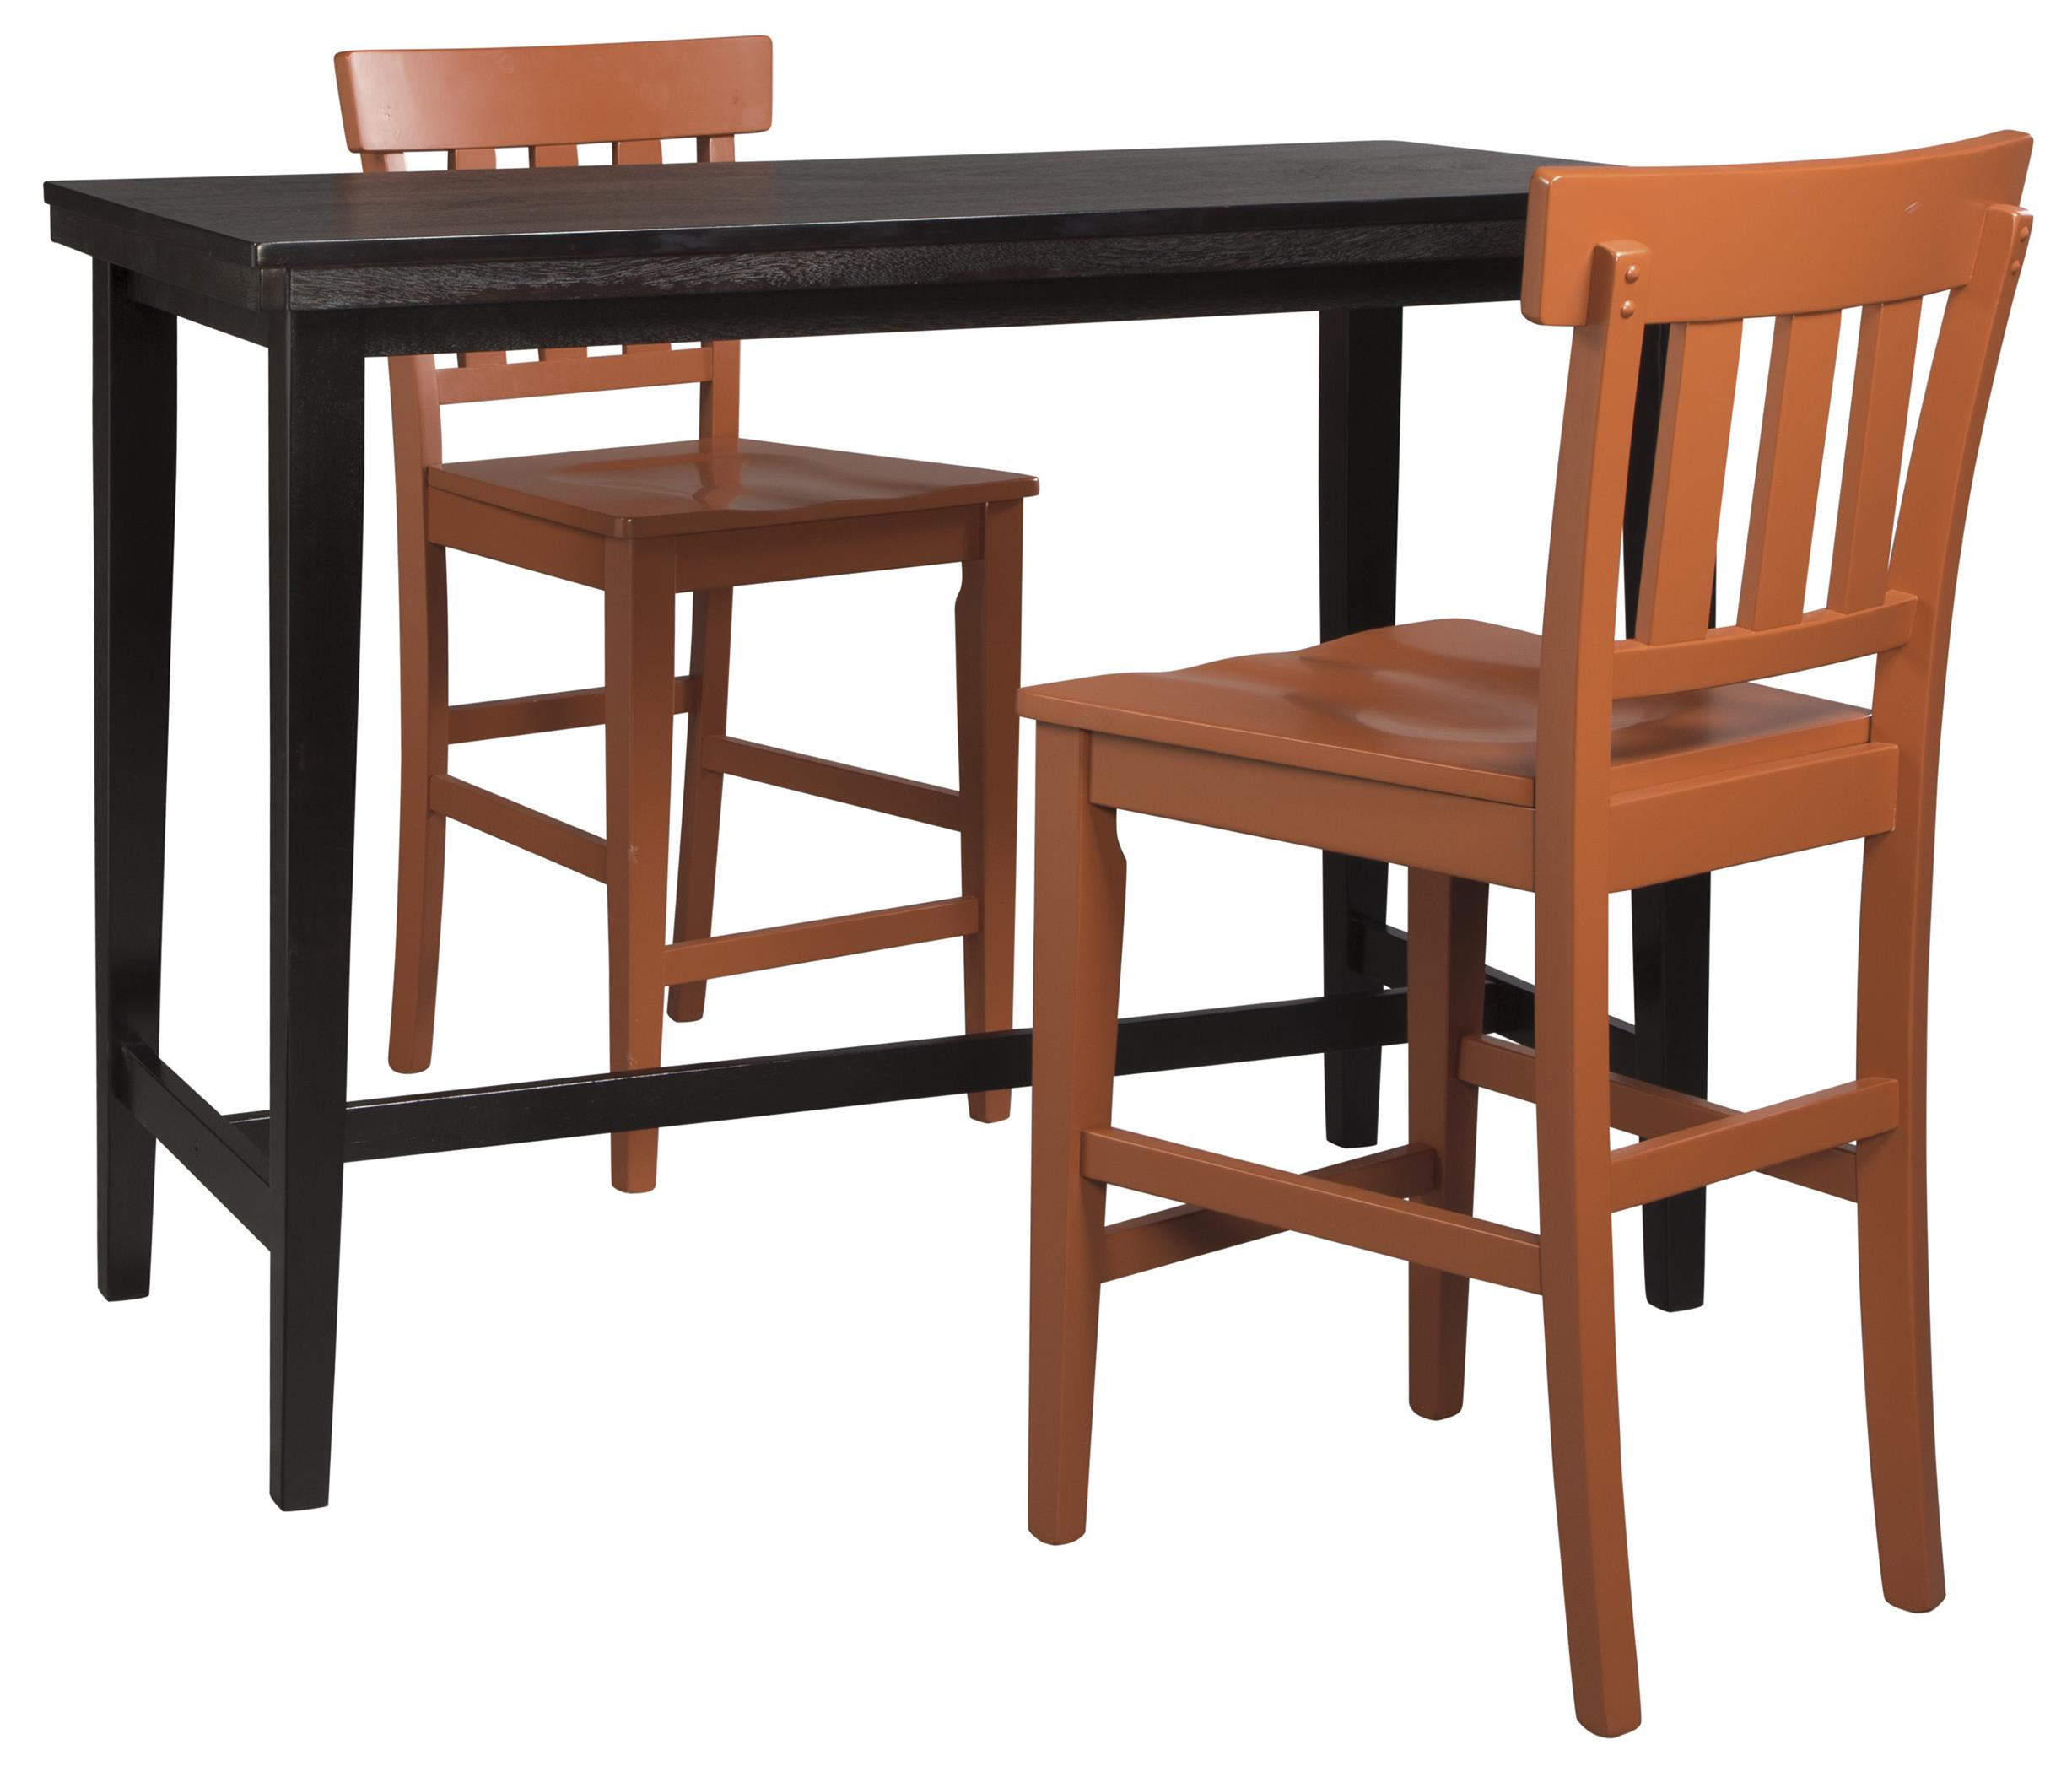 Signature Design by Ashley Kimonte 3-Piece Counter Table Set - Item Number: D250-13+2xD389-1424